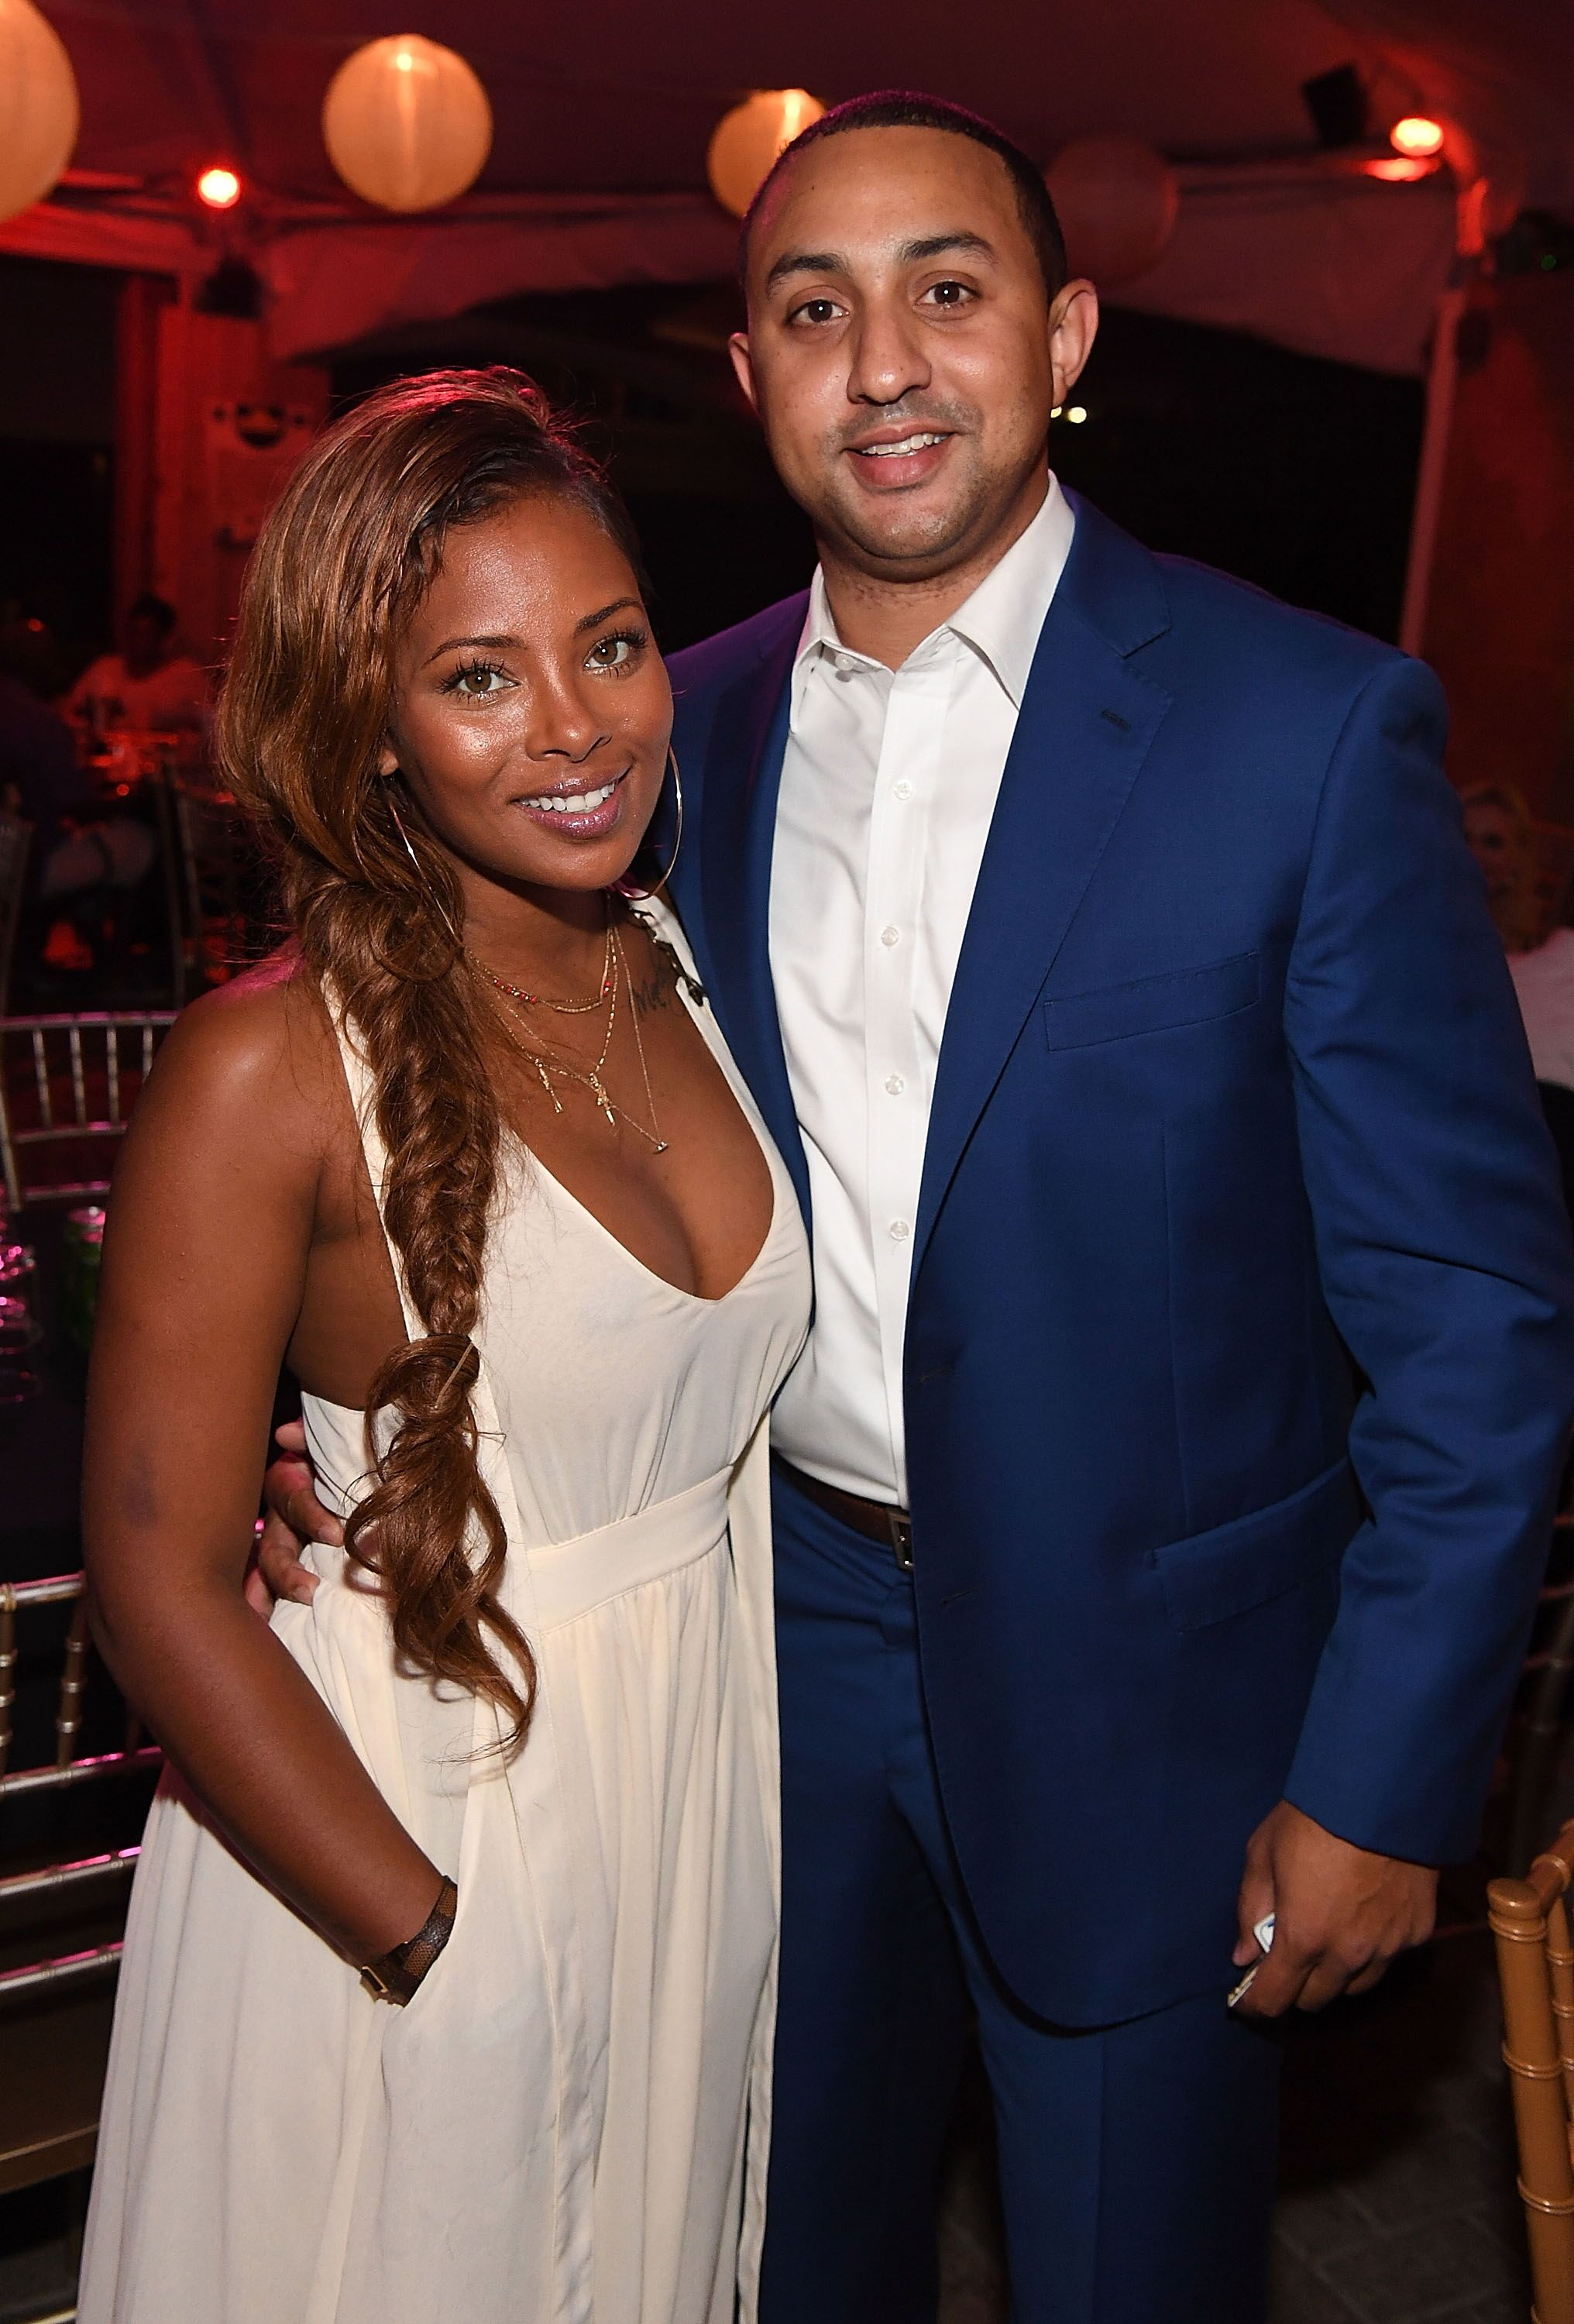 Eva Marcille and Michael Sterling attend ATL Live On The Park: Hip-Hop Soul Edition in Atlanta Georgia in 2016   Source: Getty Images